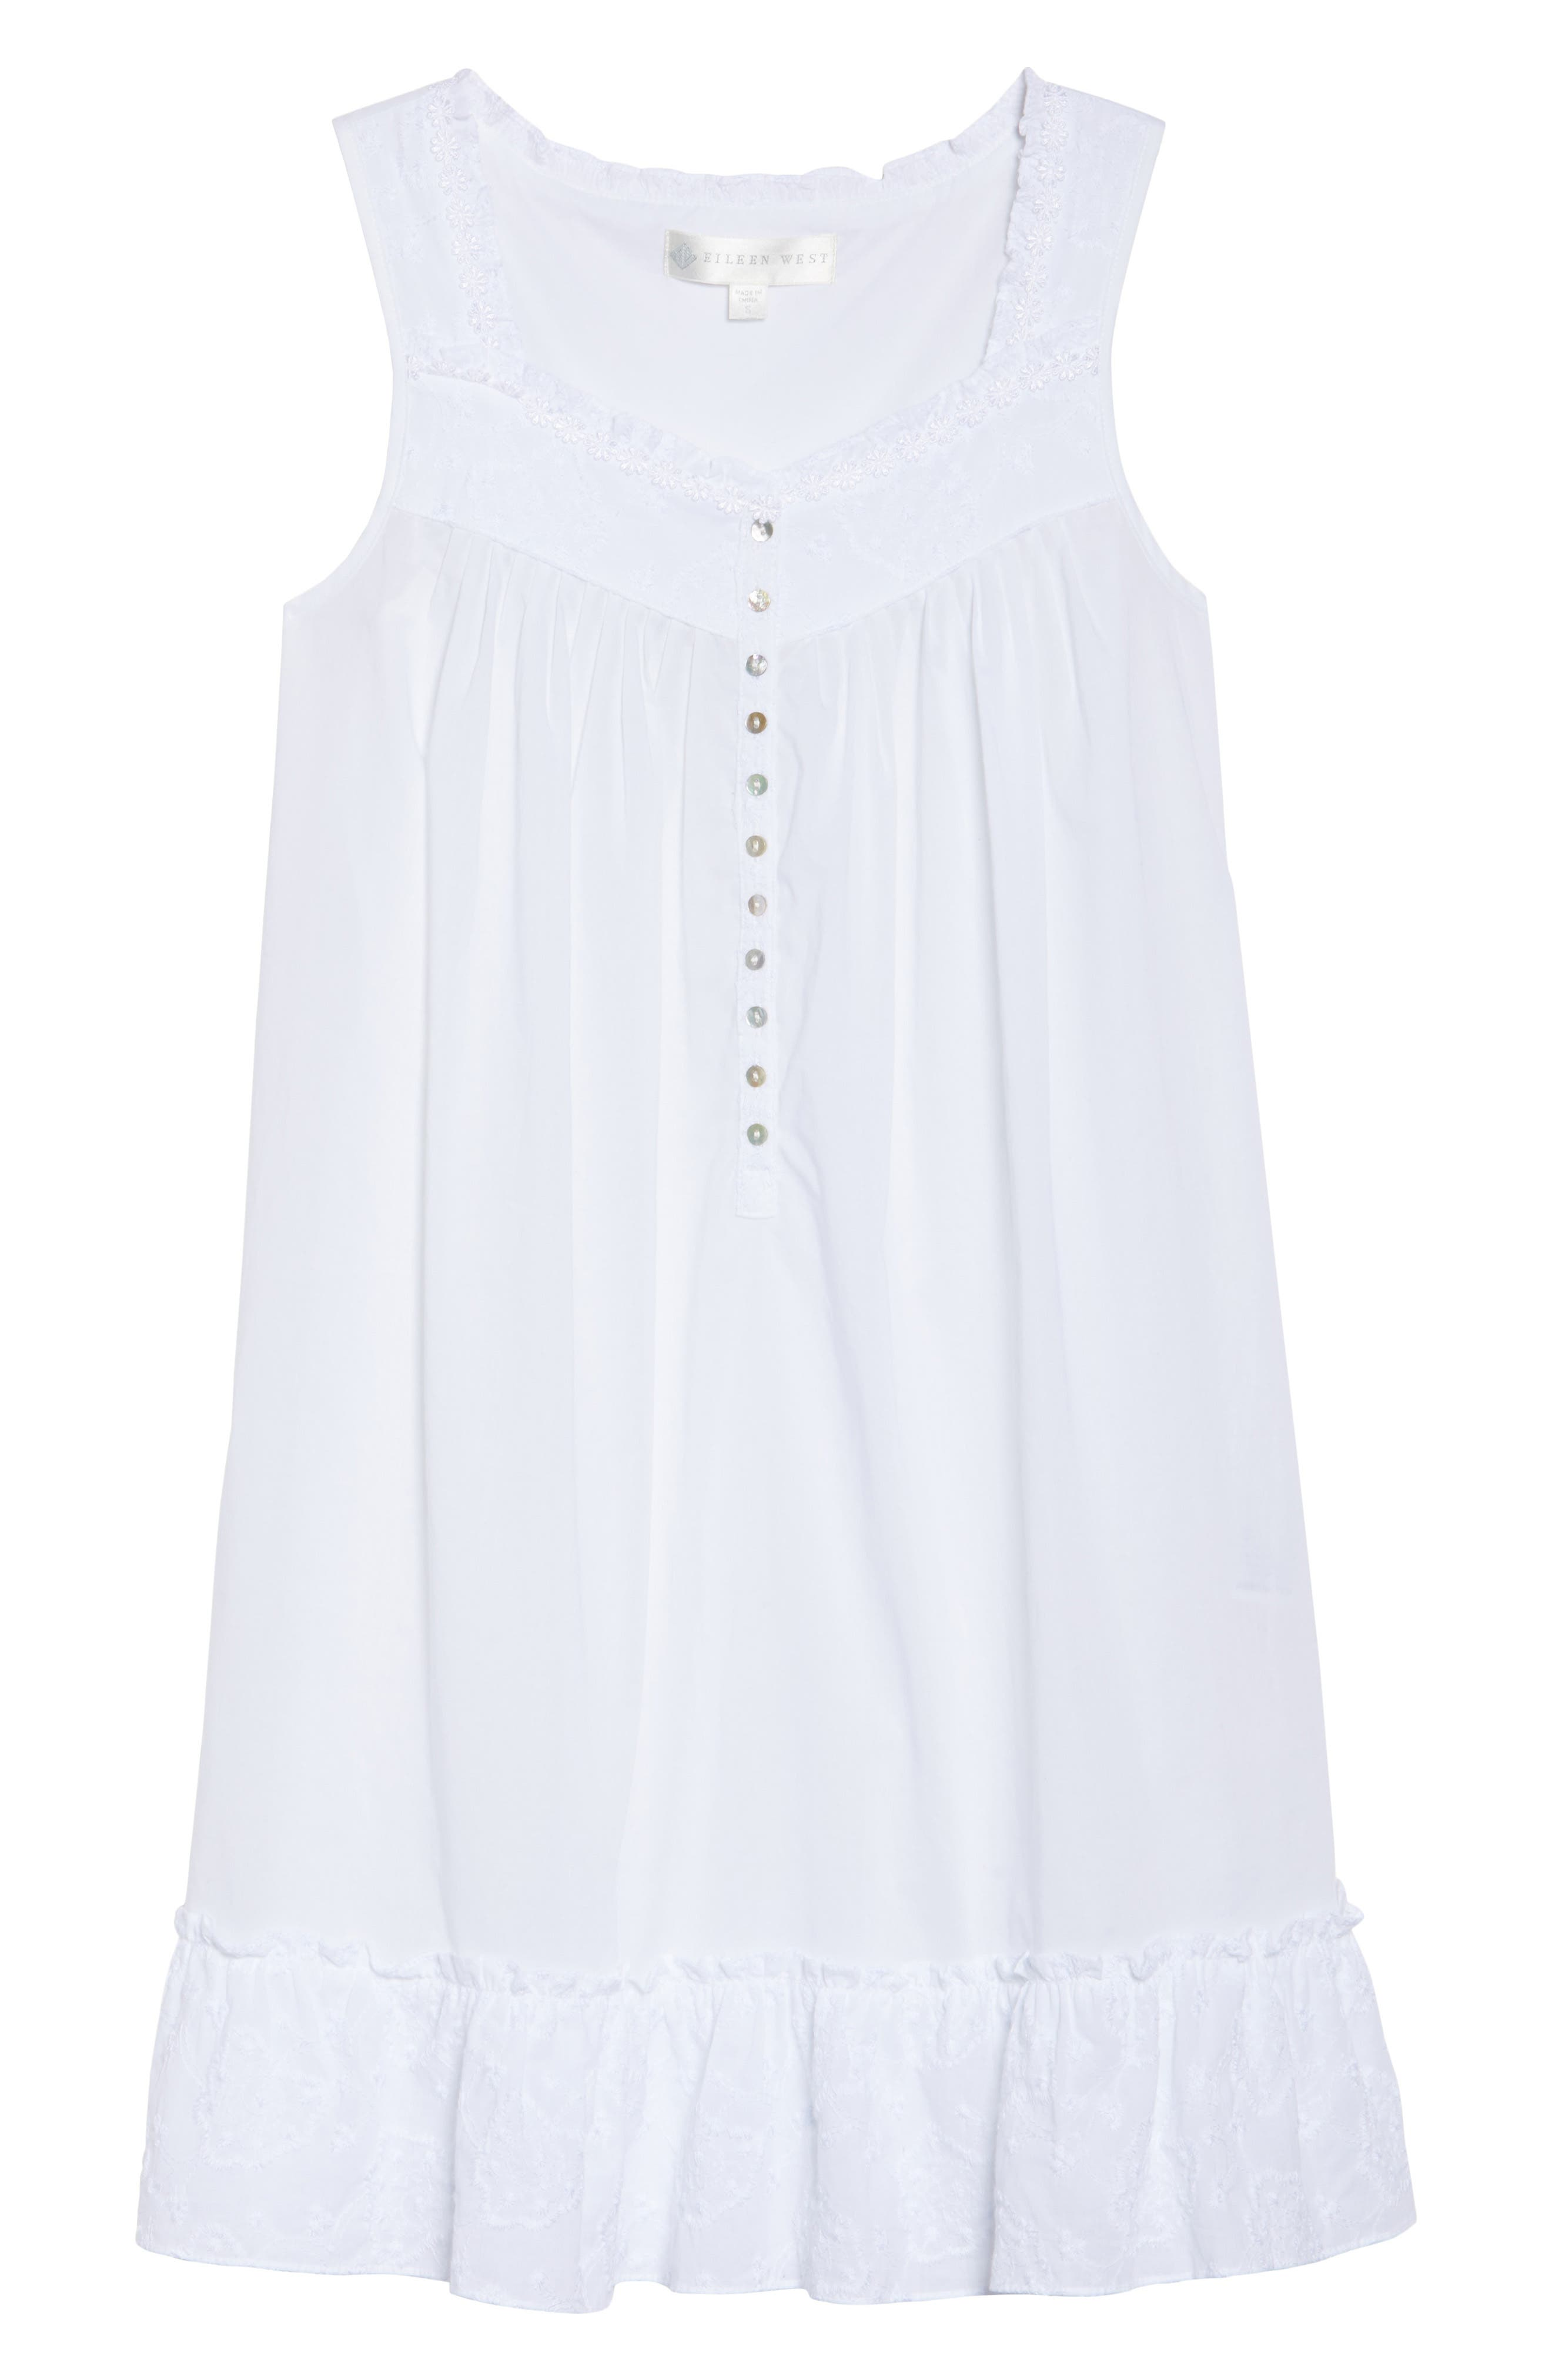 Embroidered Cotton Nightgown,                             Alternate thumbnail 4, color,                             White Floral Embroidery